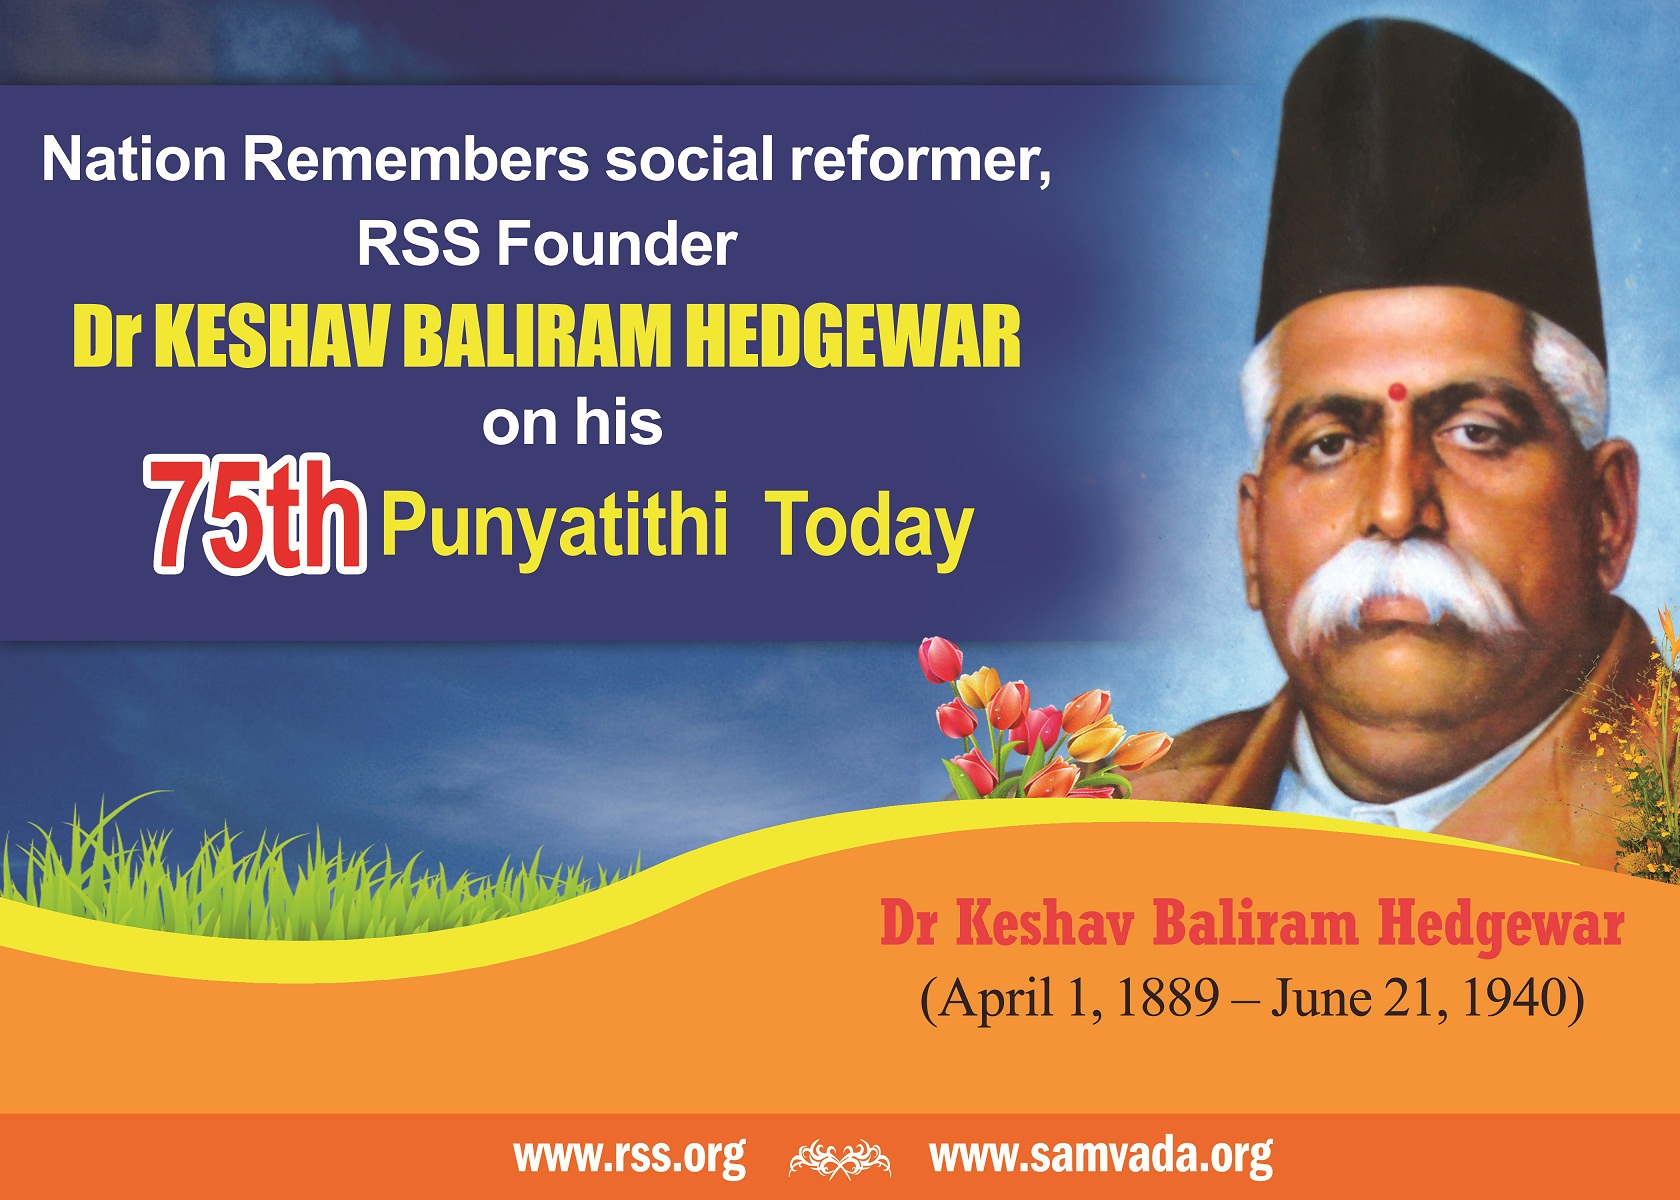 Dr Hedgewar 75th Punyatithi